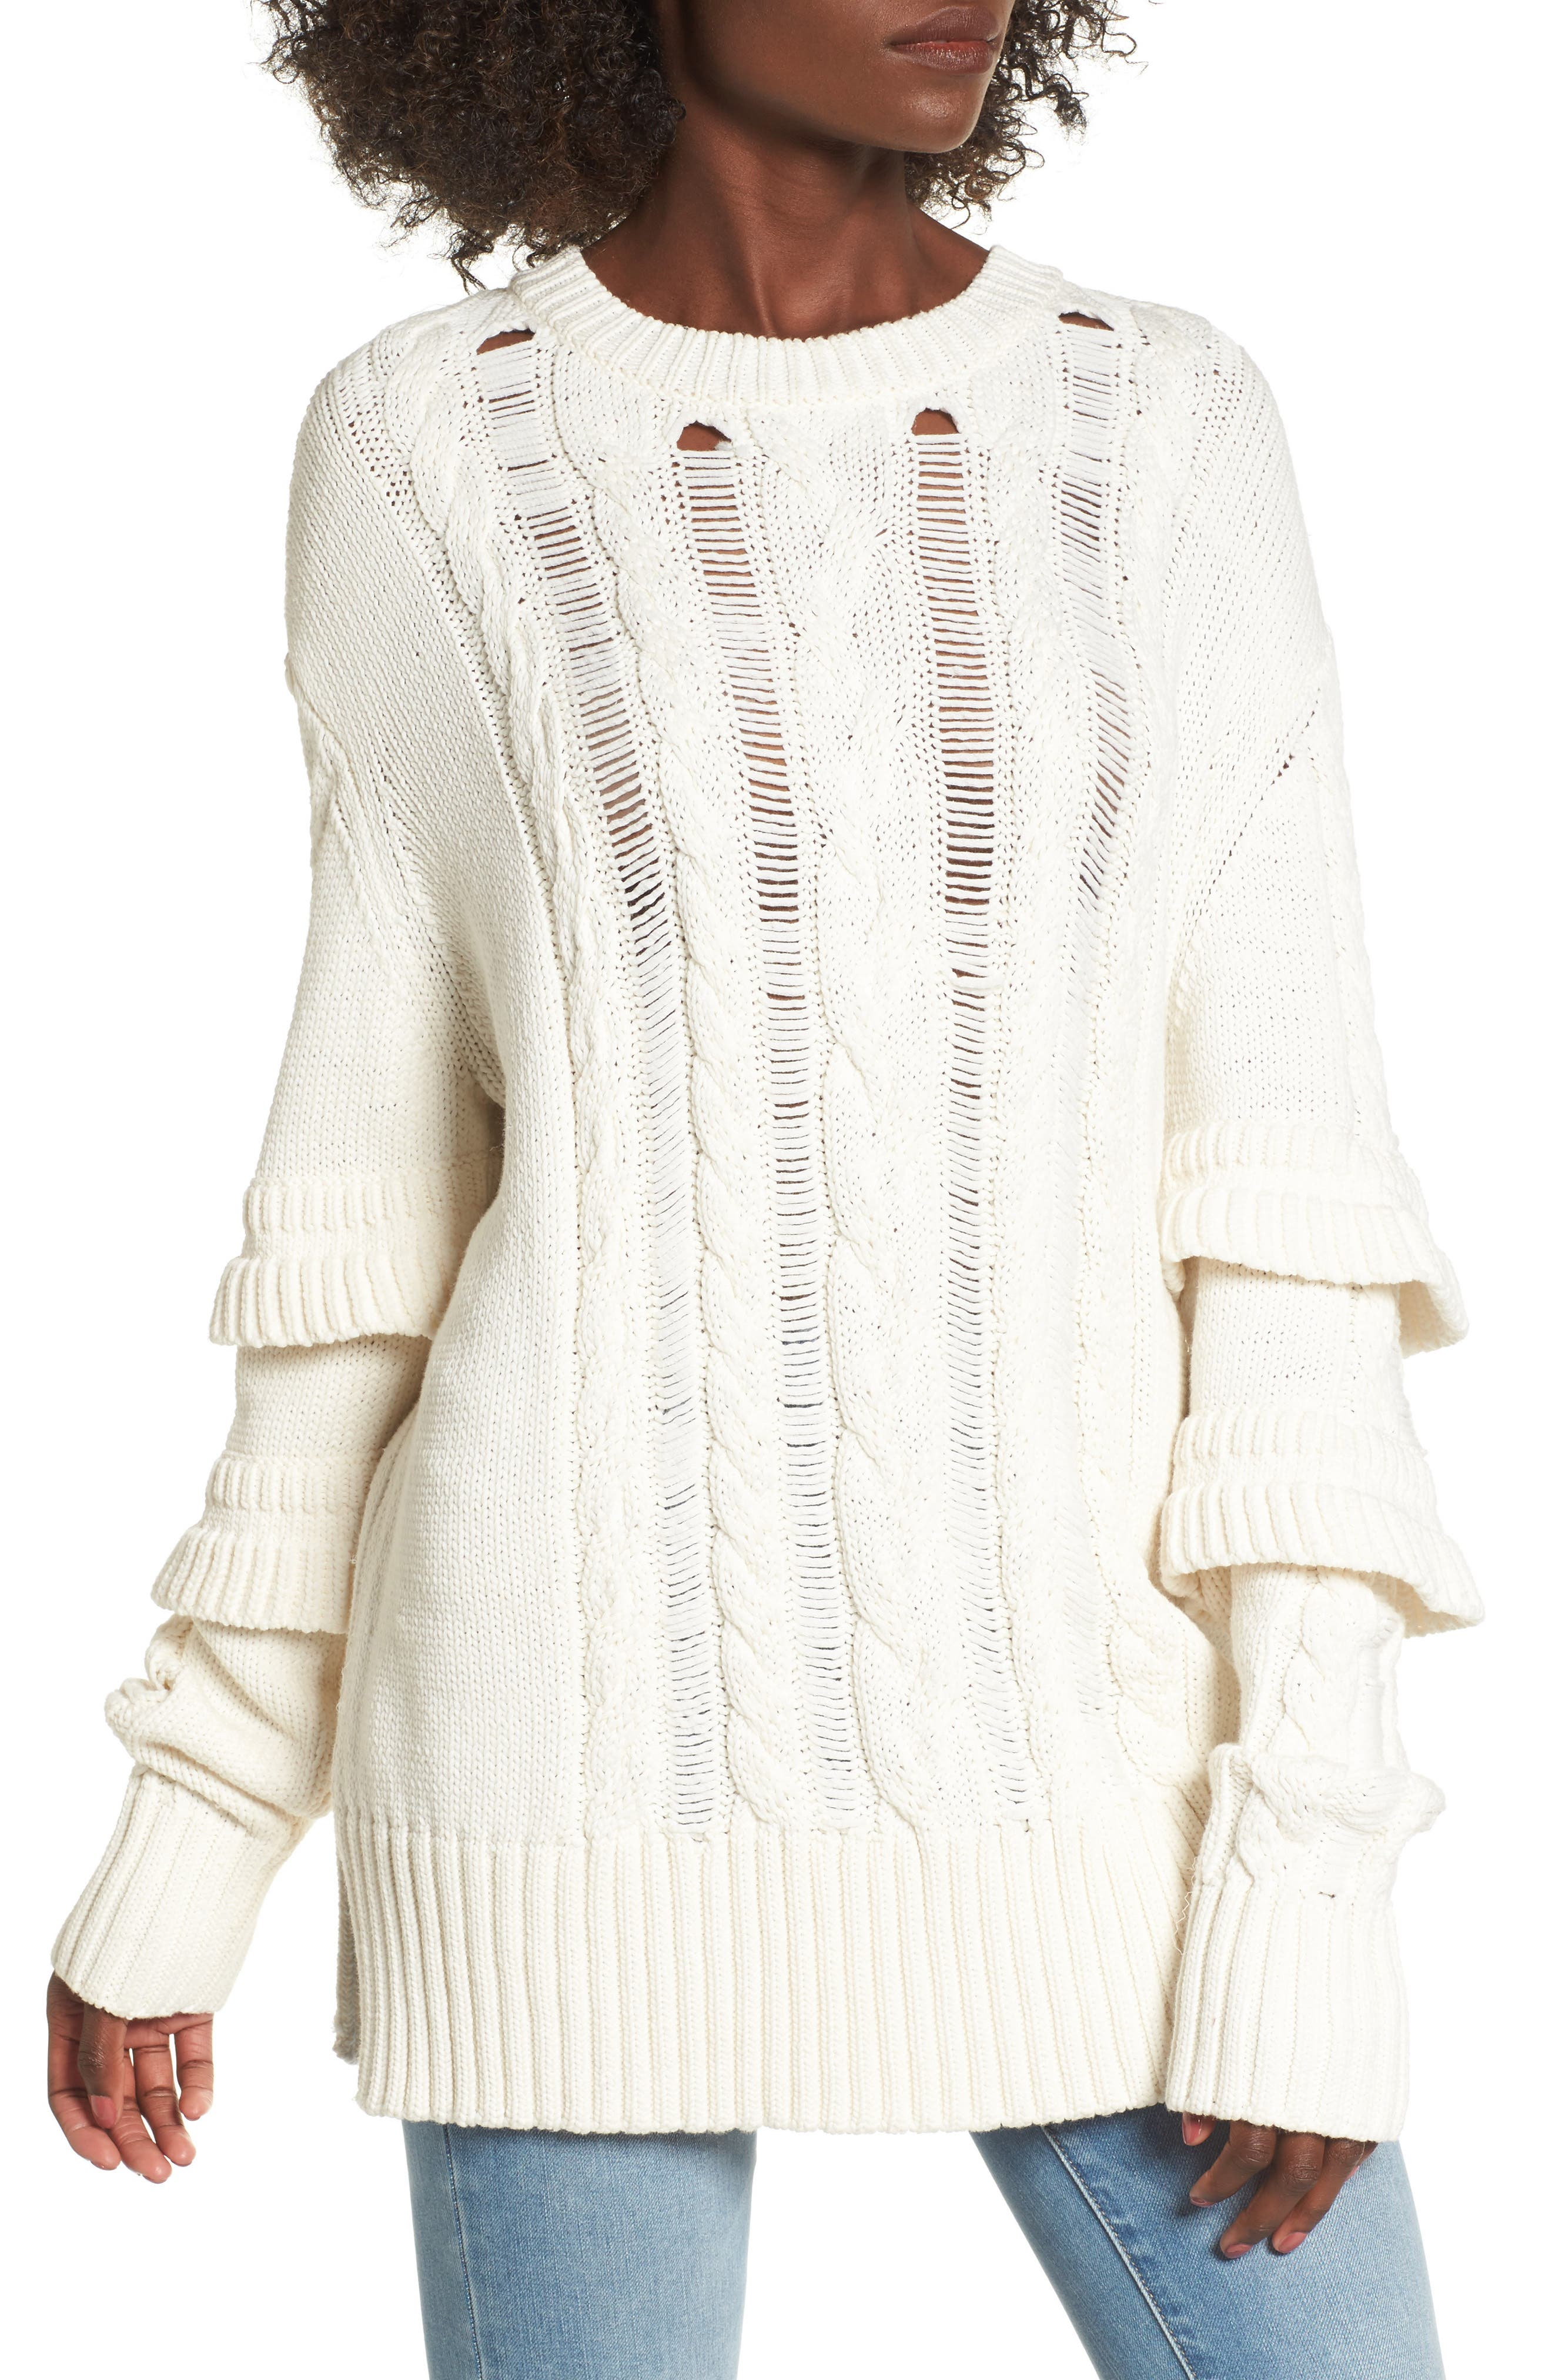 Ruffle Sleeve Cable Knit Sweater,                         Main,                         color, Just For Kicks/ Ivory